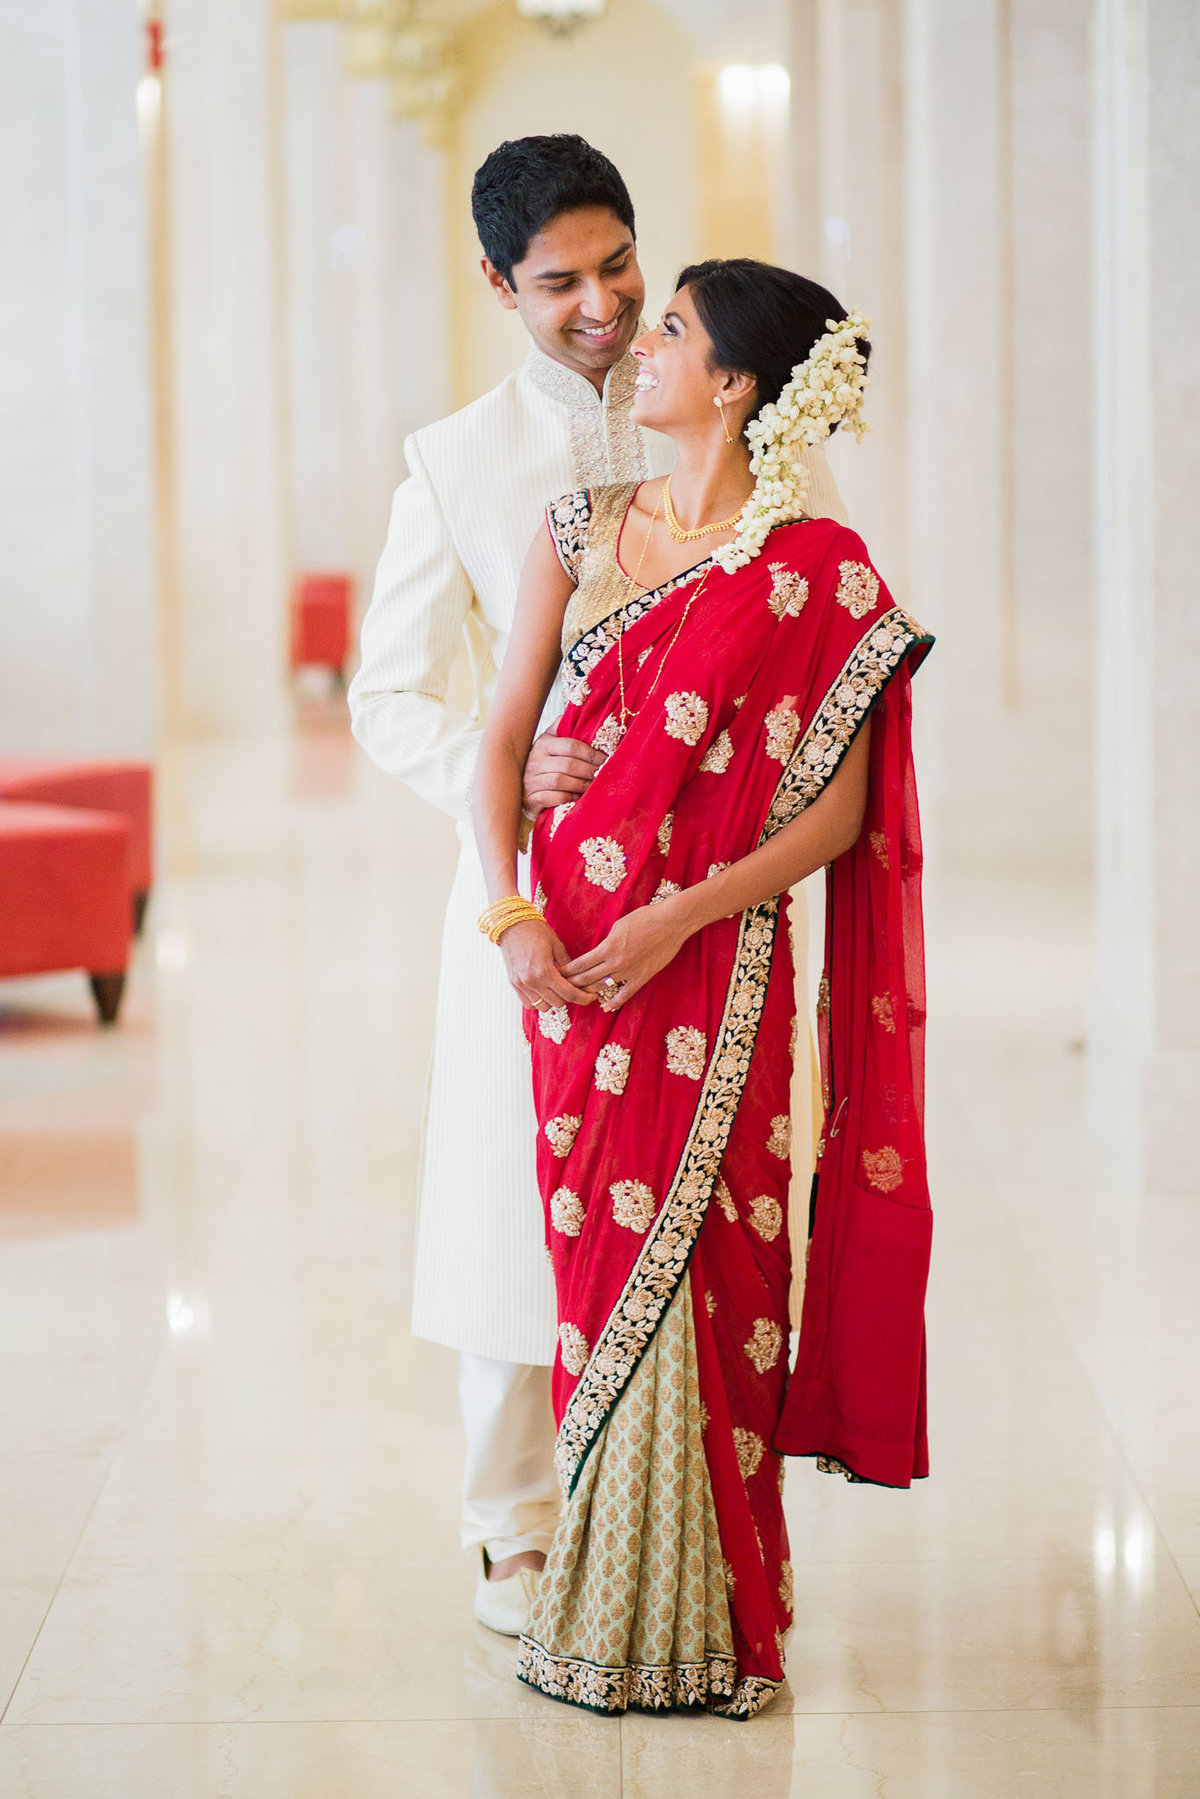 Harold-Washington-Library-South-Asian-Wedding-033